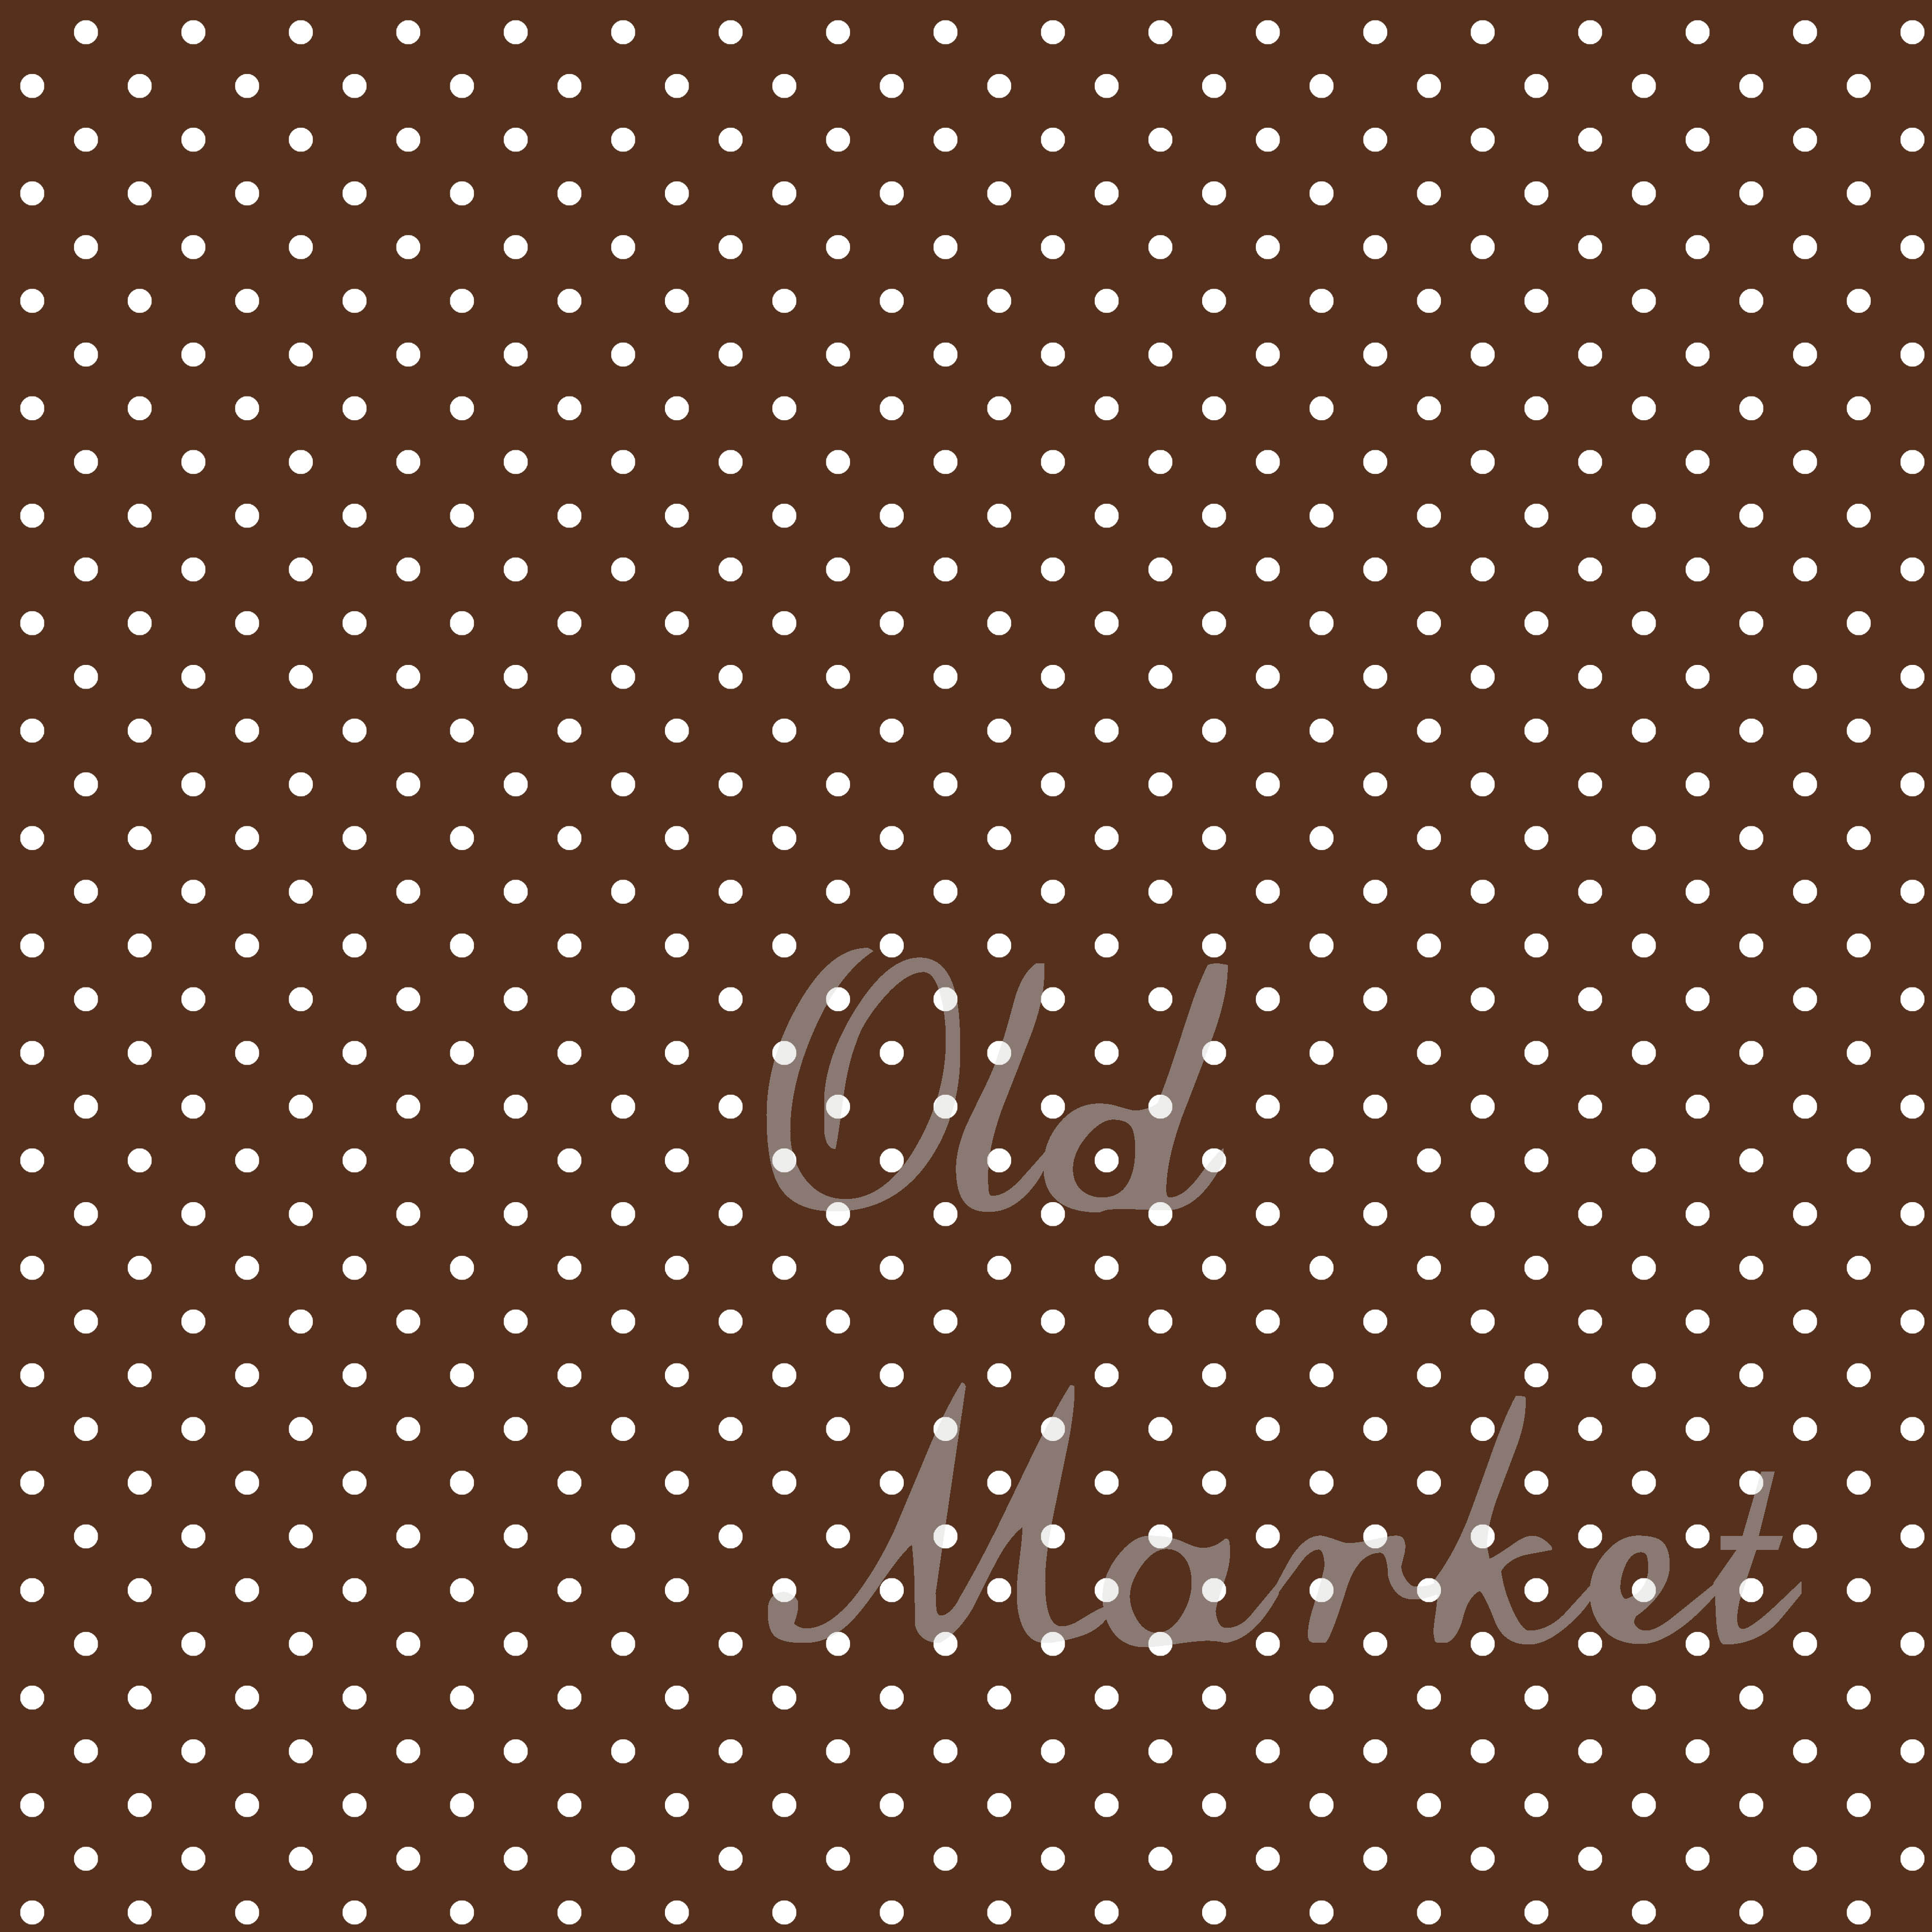 Brown Patterns Digital Paper Graphic Backgrounds By oldmarketdesigns - Image 2